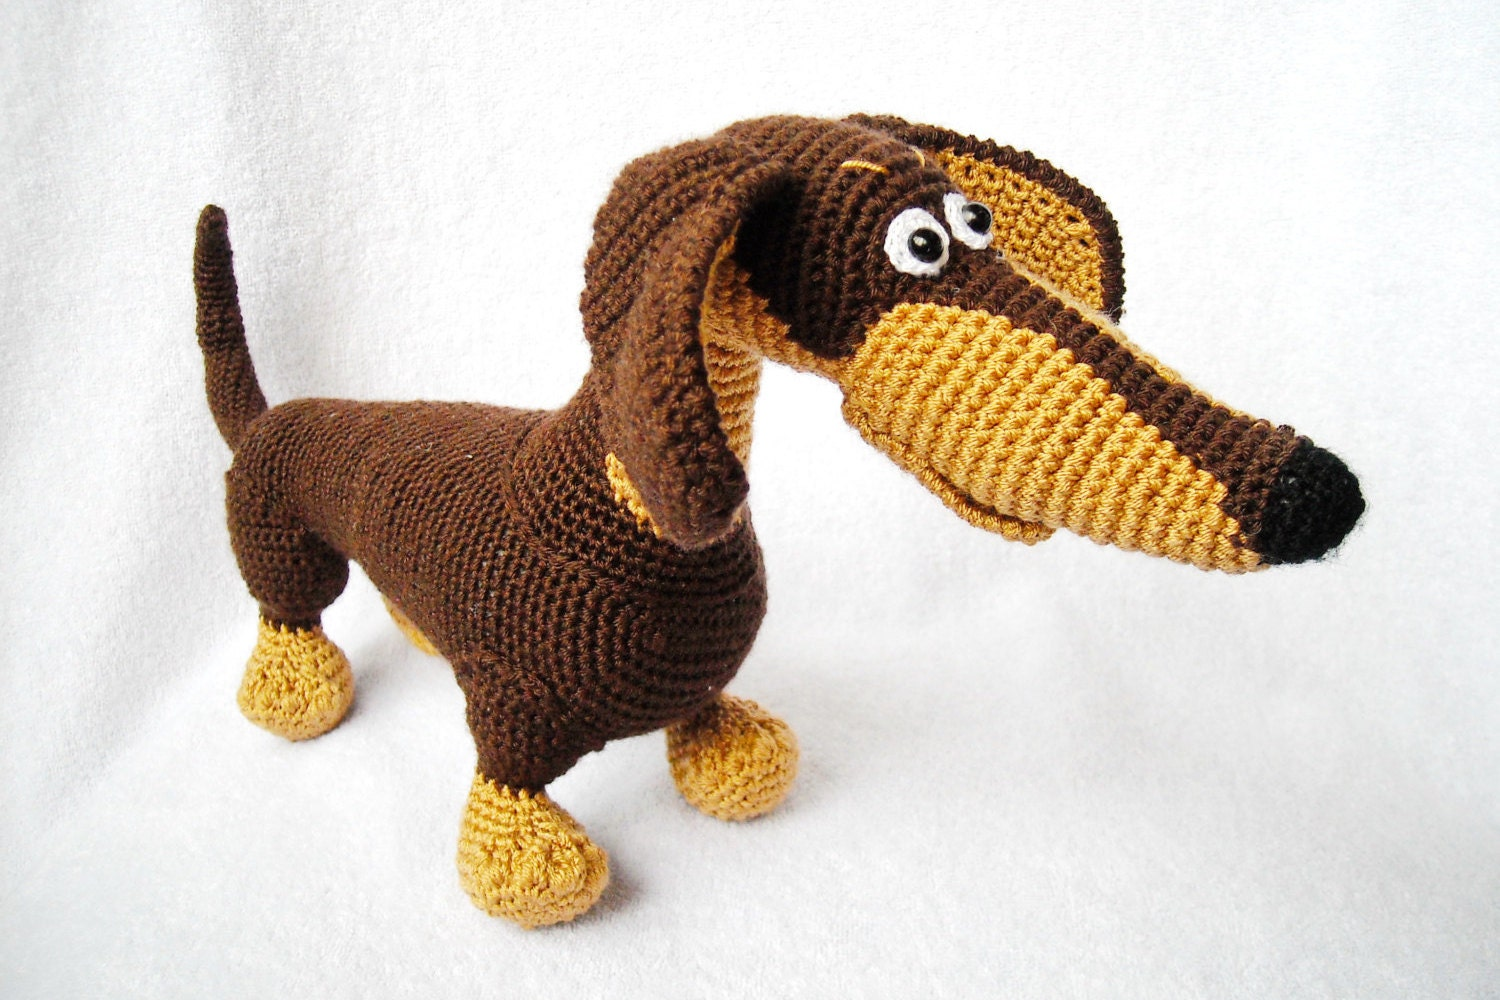 Amigurumi Wiener Dog Pattern : Crochet dachshund brown amigurumi dachshund stuffed animal dog